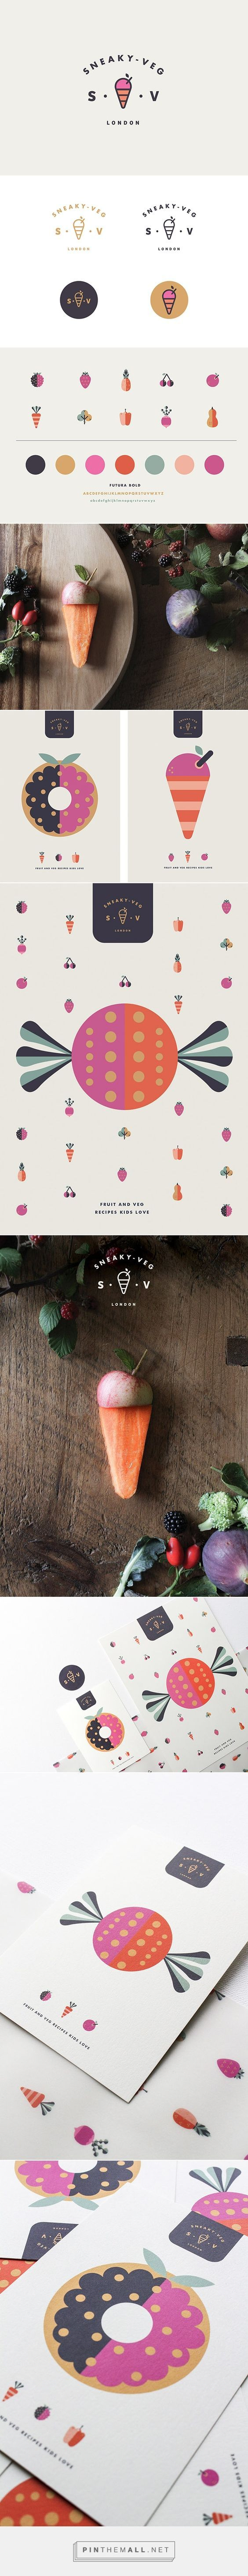 Sneaky Veg Brand Identity on Behance. | branding | design: